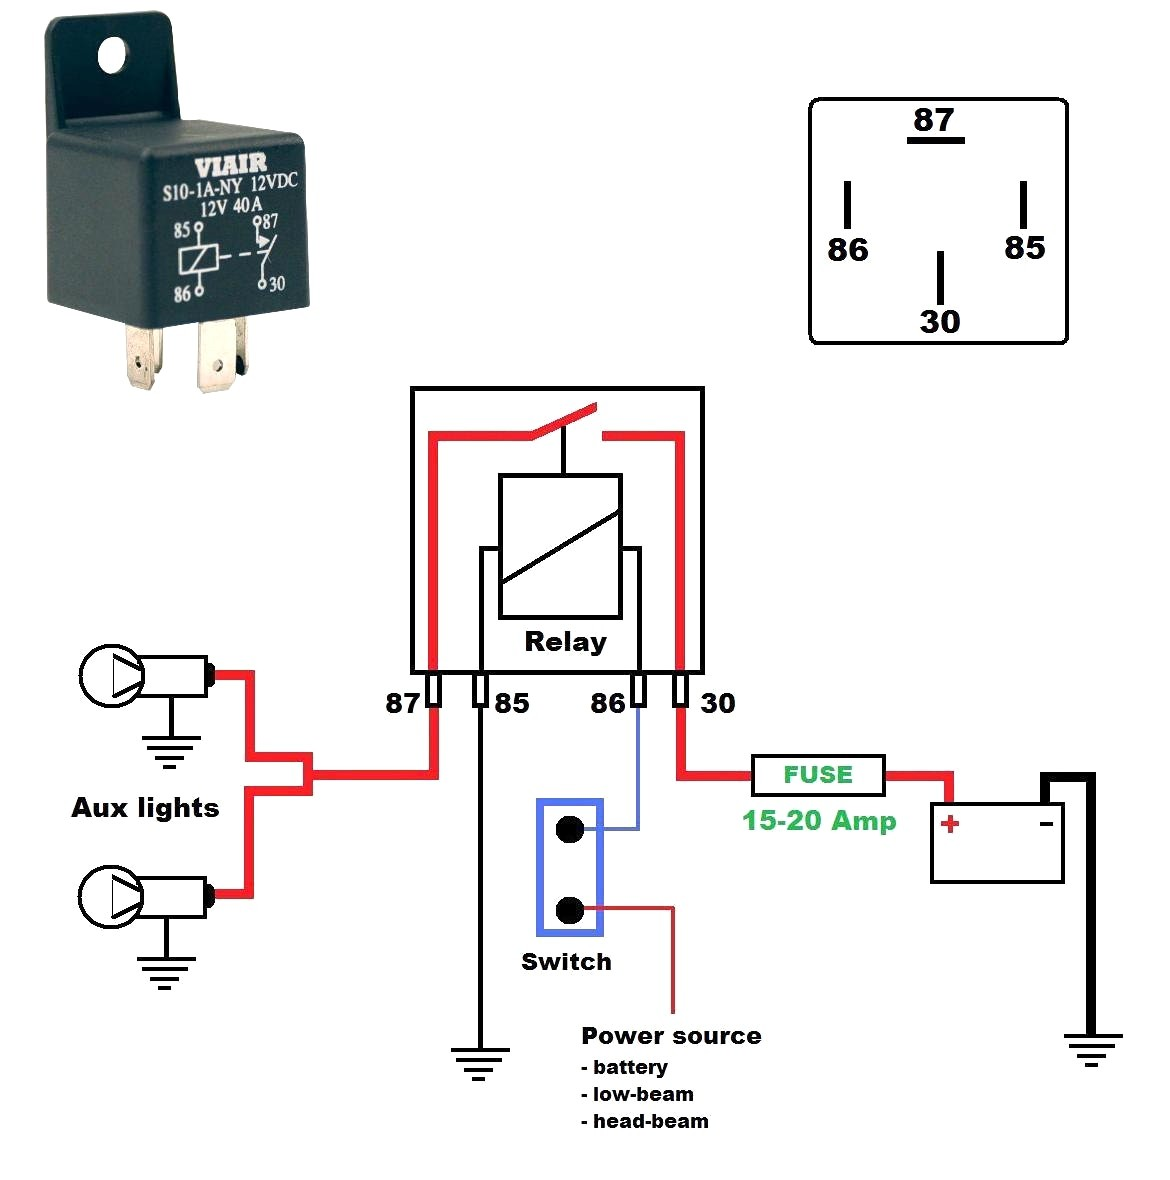 12V 30A Relay Wiring Diagram from static-cdn.imageservice.cloud